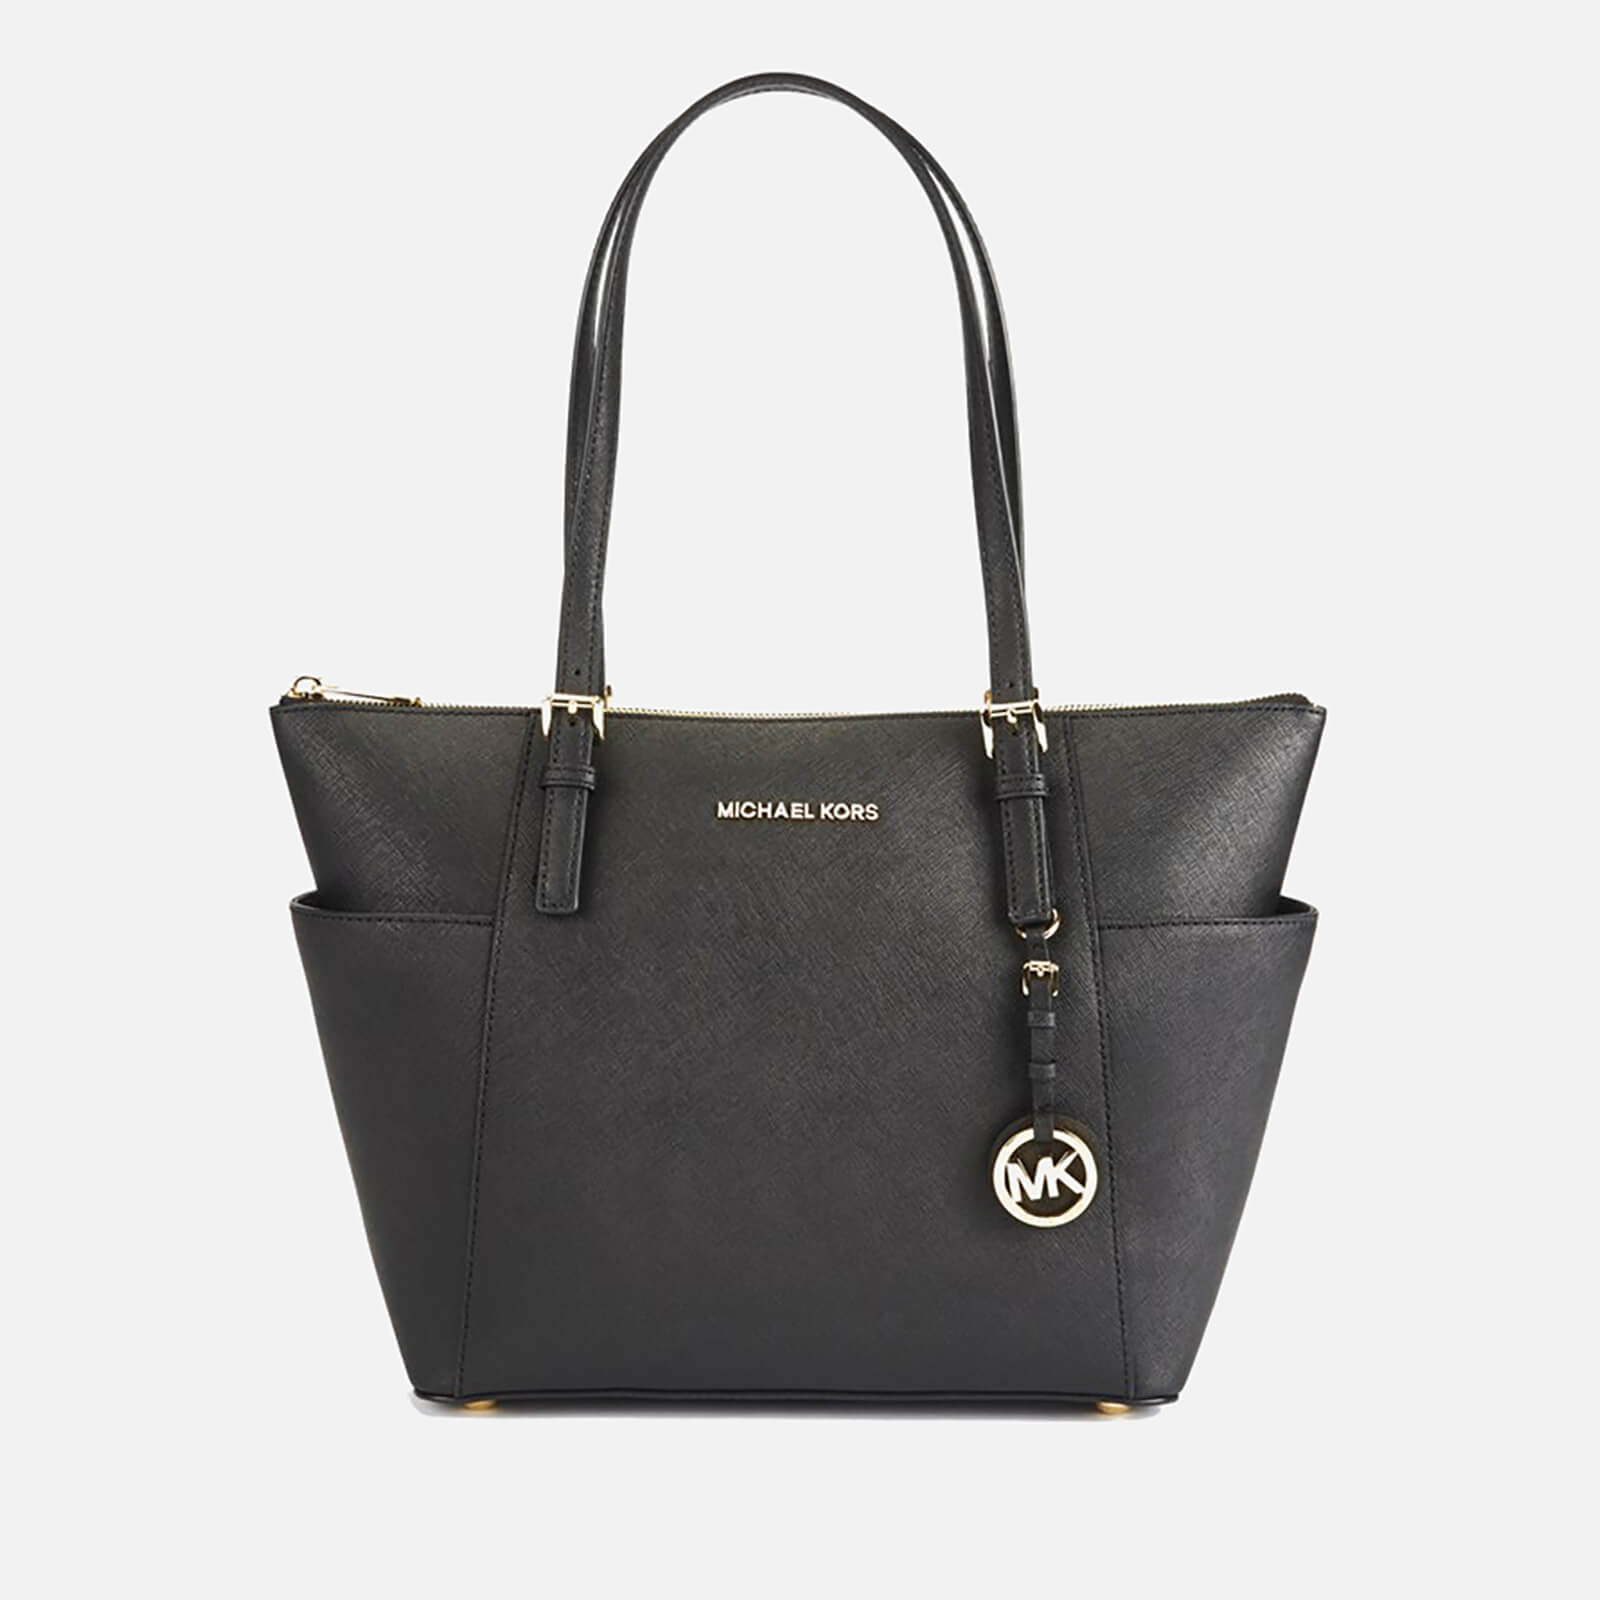 6cebdb98c23b MICHAEL MICHAEL KORS Women's Jet Set East West Top Zip Tote Bag - Black